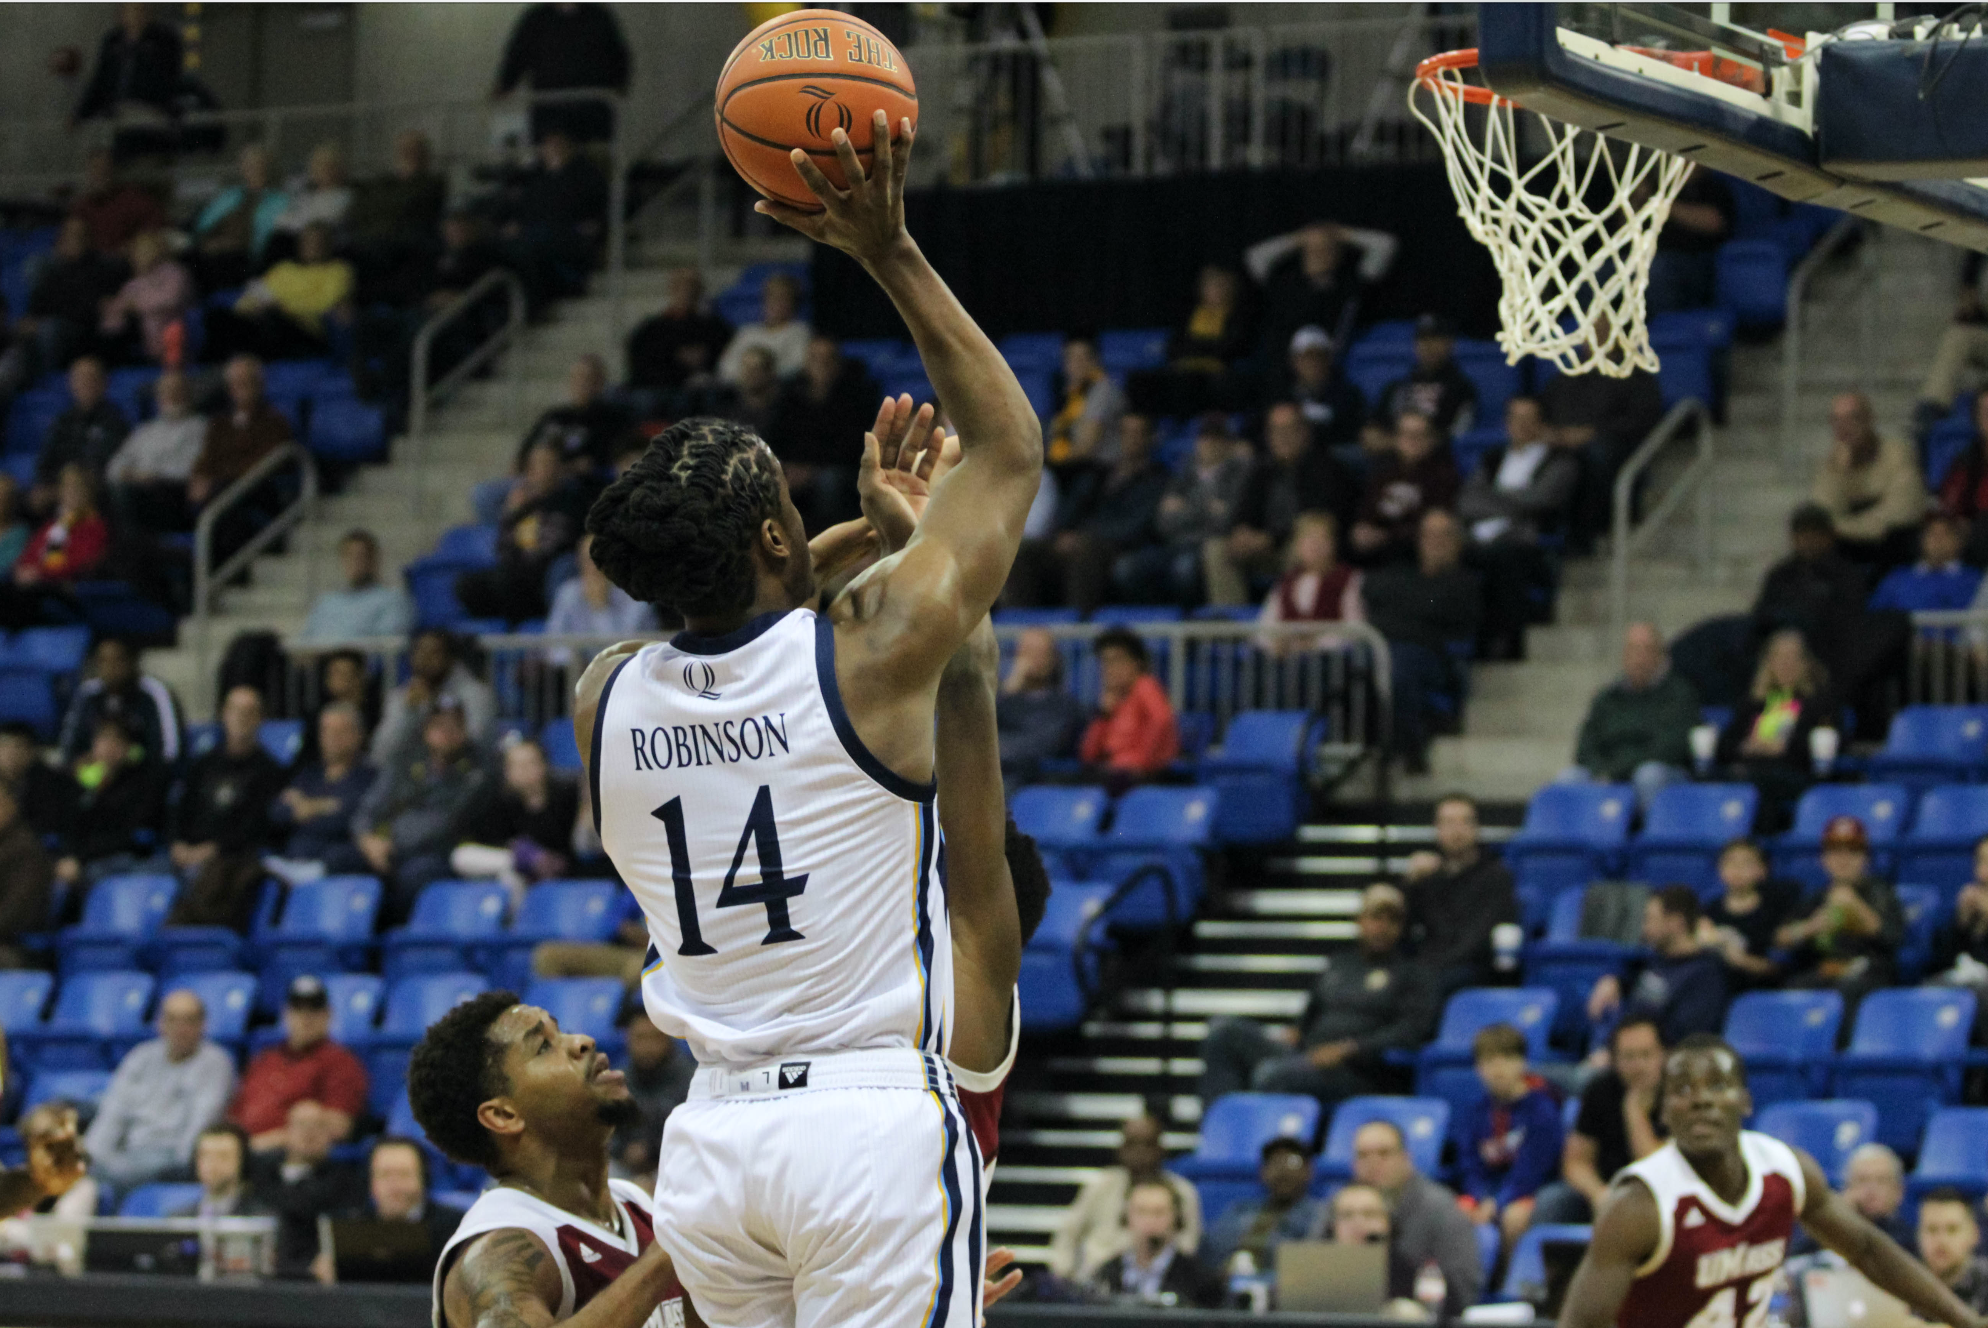 Quinnipiac men's basketball hangs on to beat UMass Amherst 68-66